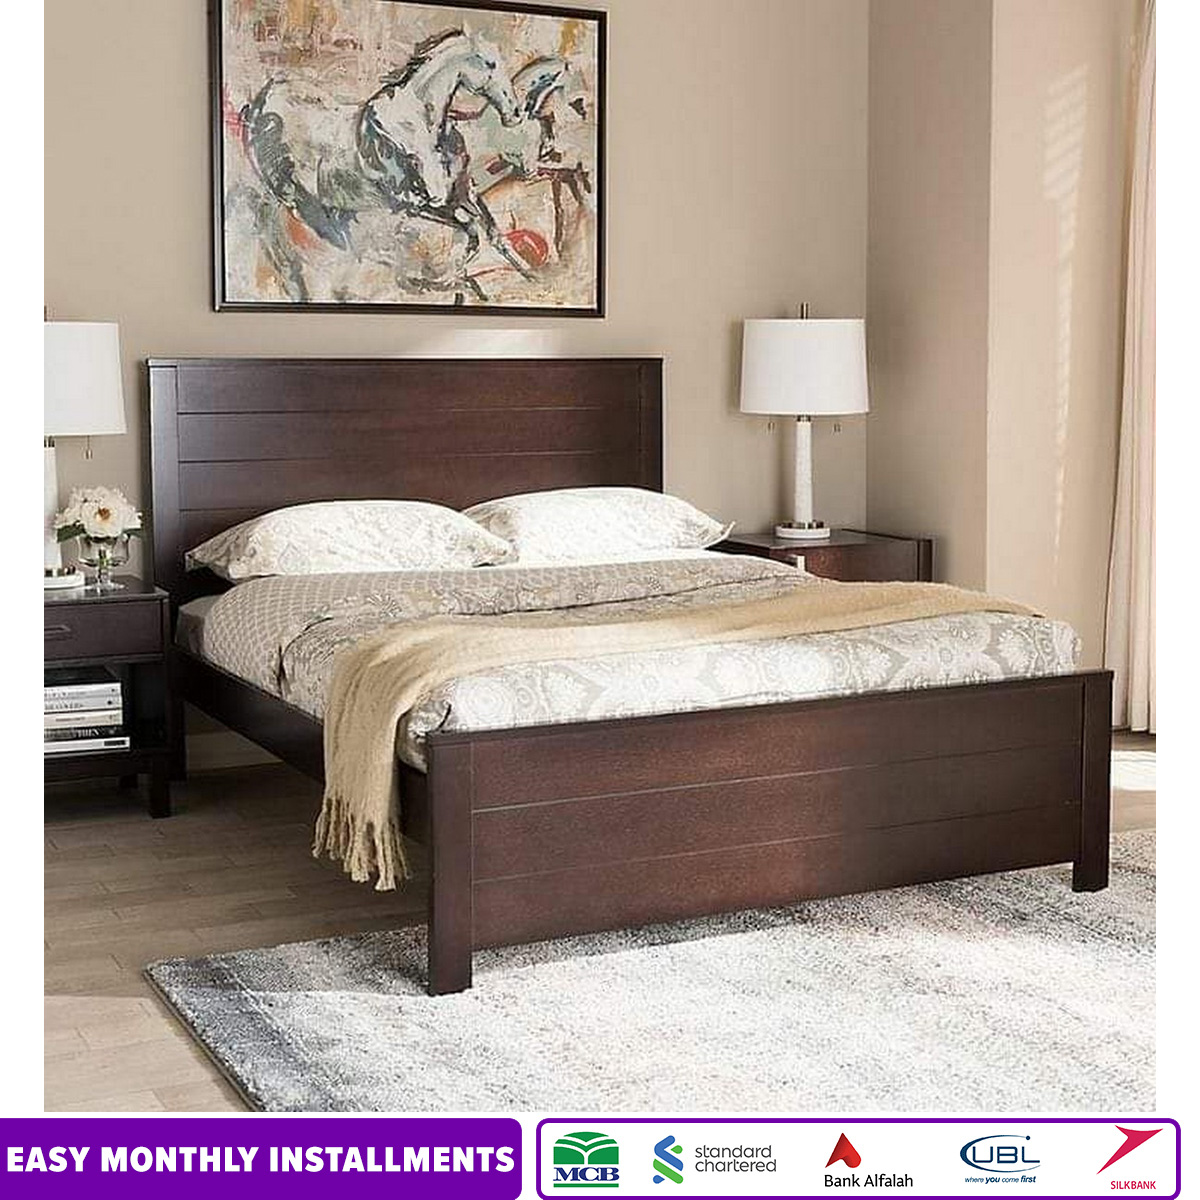 Ghania Modern Queen & King Size Bed - Without Mattress